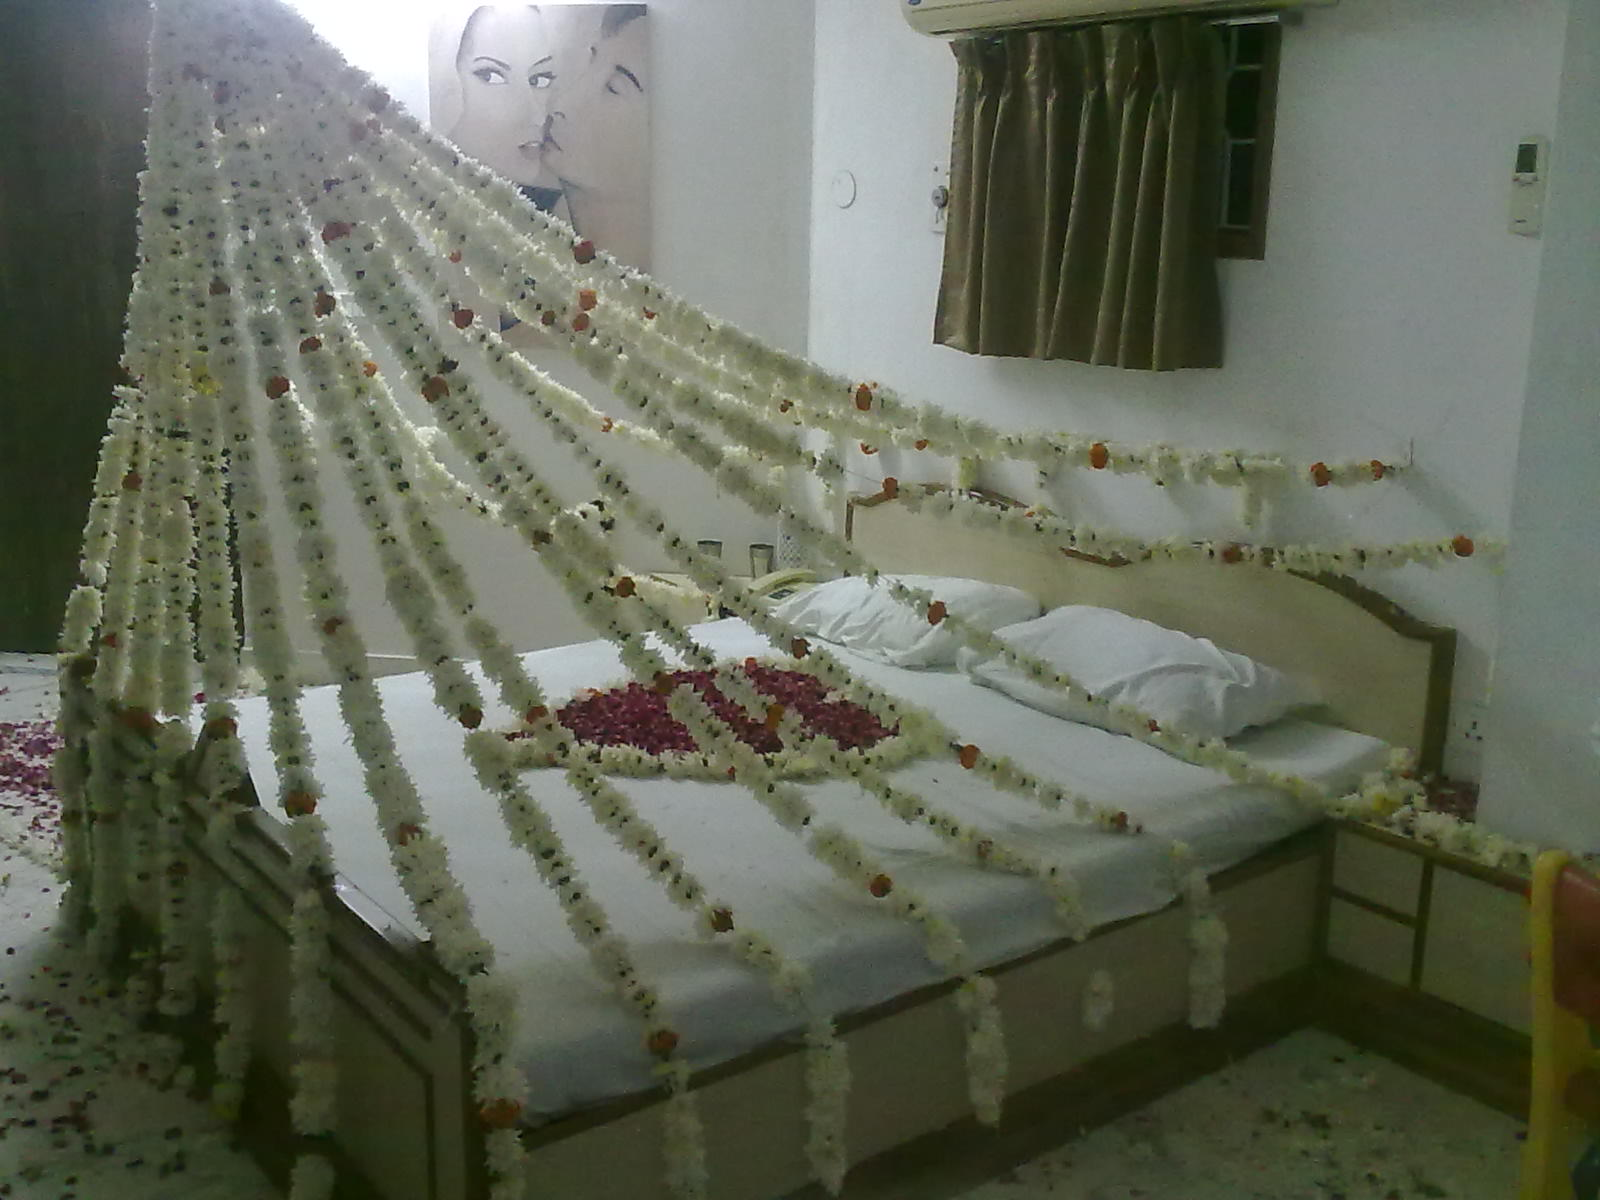 Bedroom decorating ideas for wedding night - First Night Bedroom Decoration Tuforce